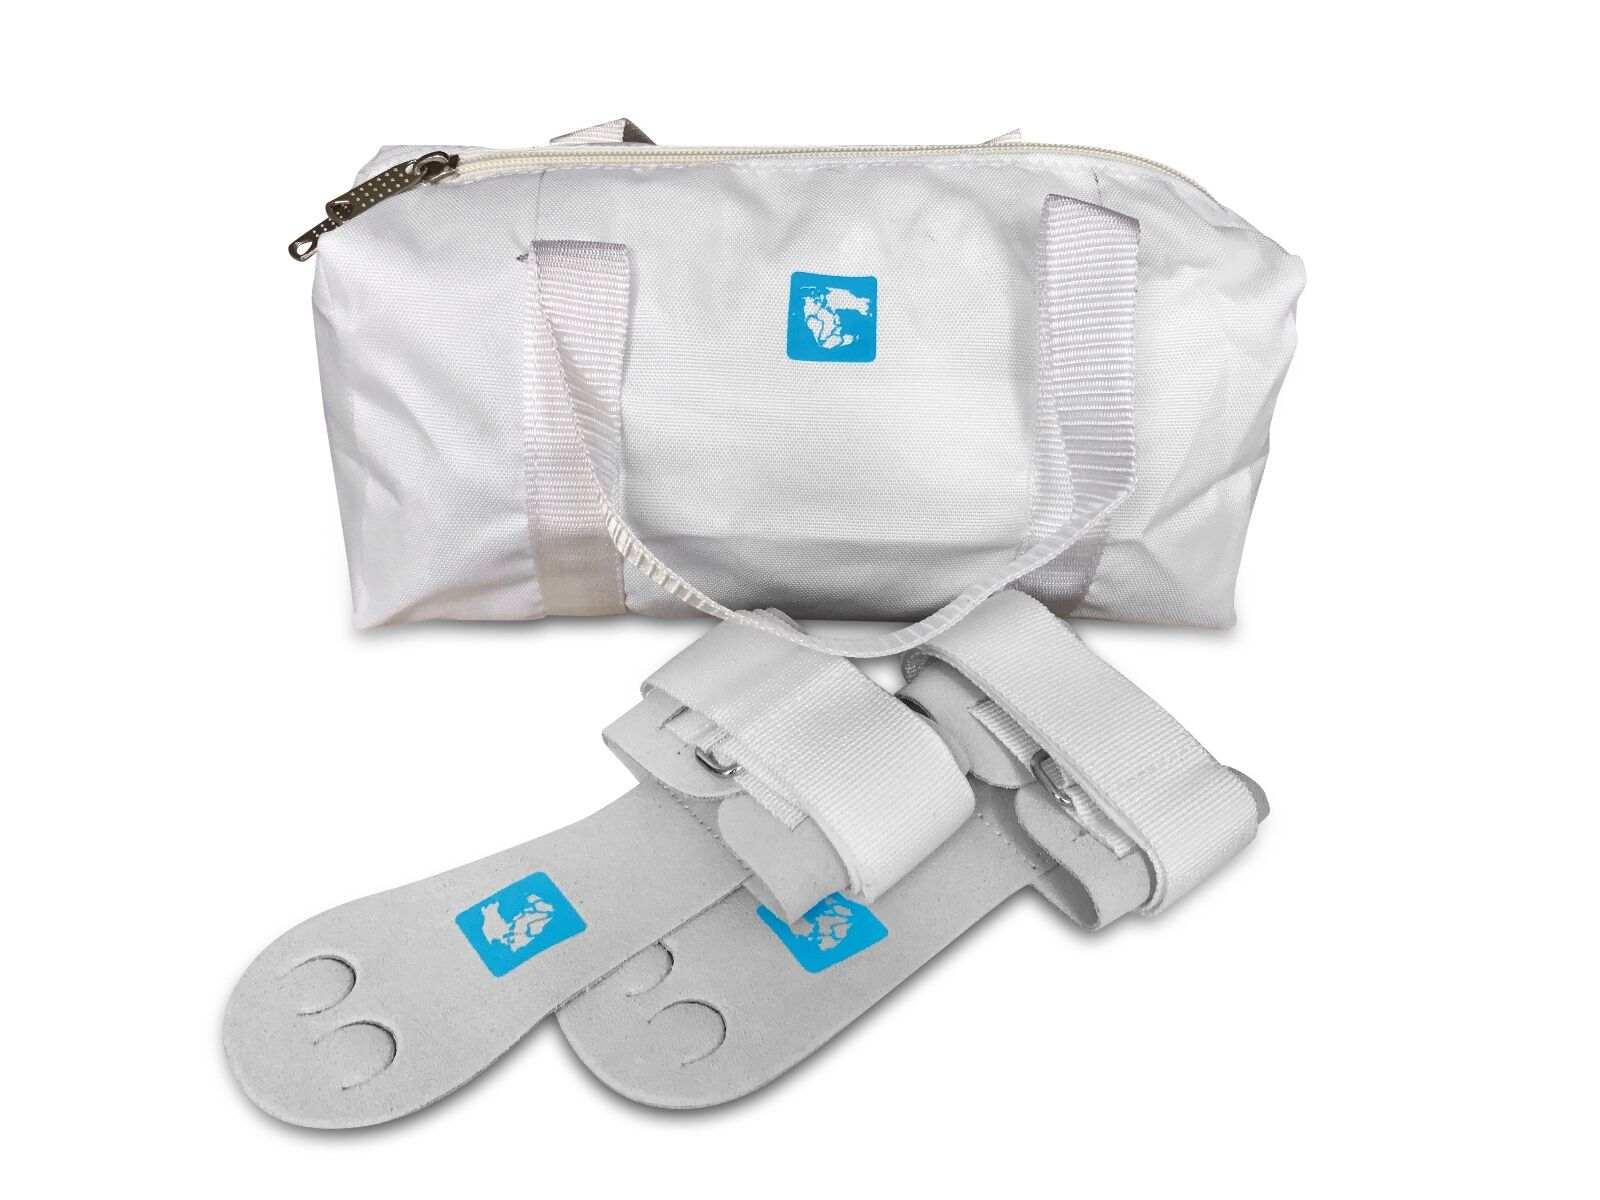 Gymadvisor senior white leather gymnastic palm hand guards + white kit bag